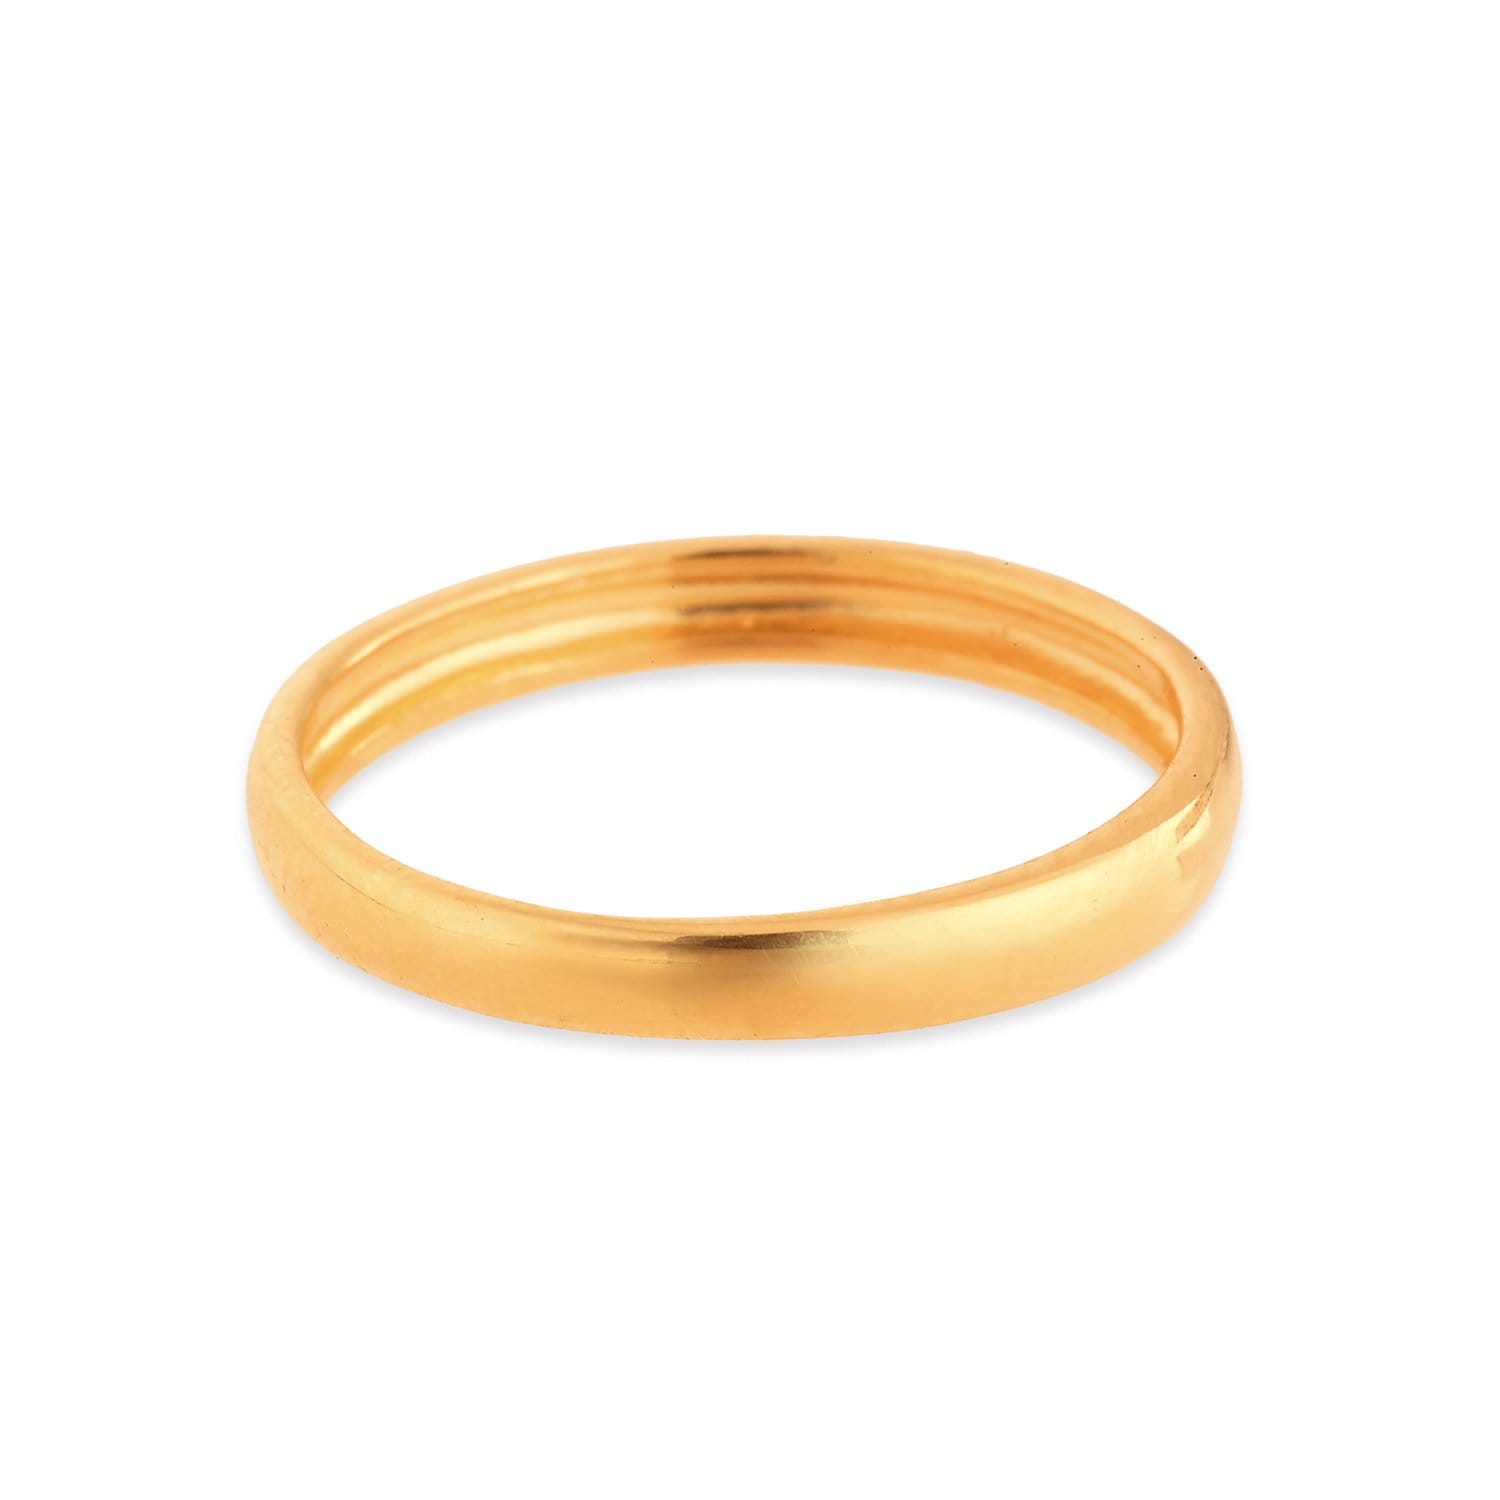 jewellery collections buy men rings for ring plain online designs women india gold ornaments and